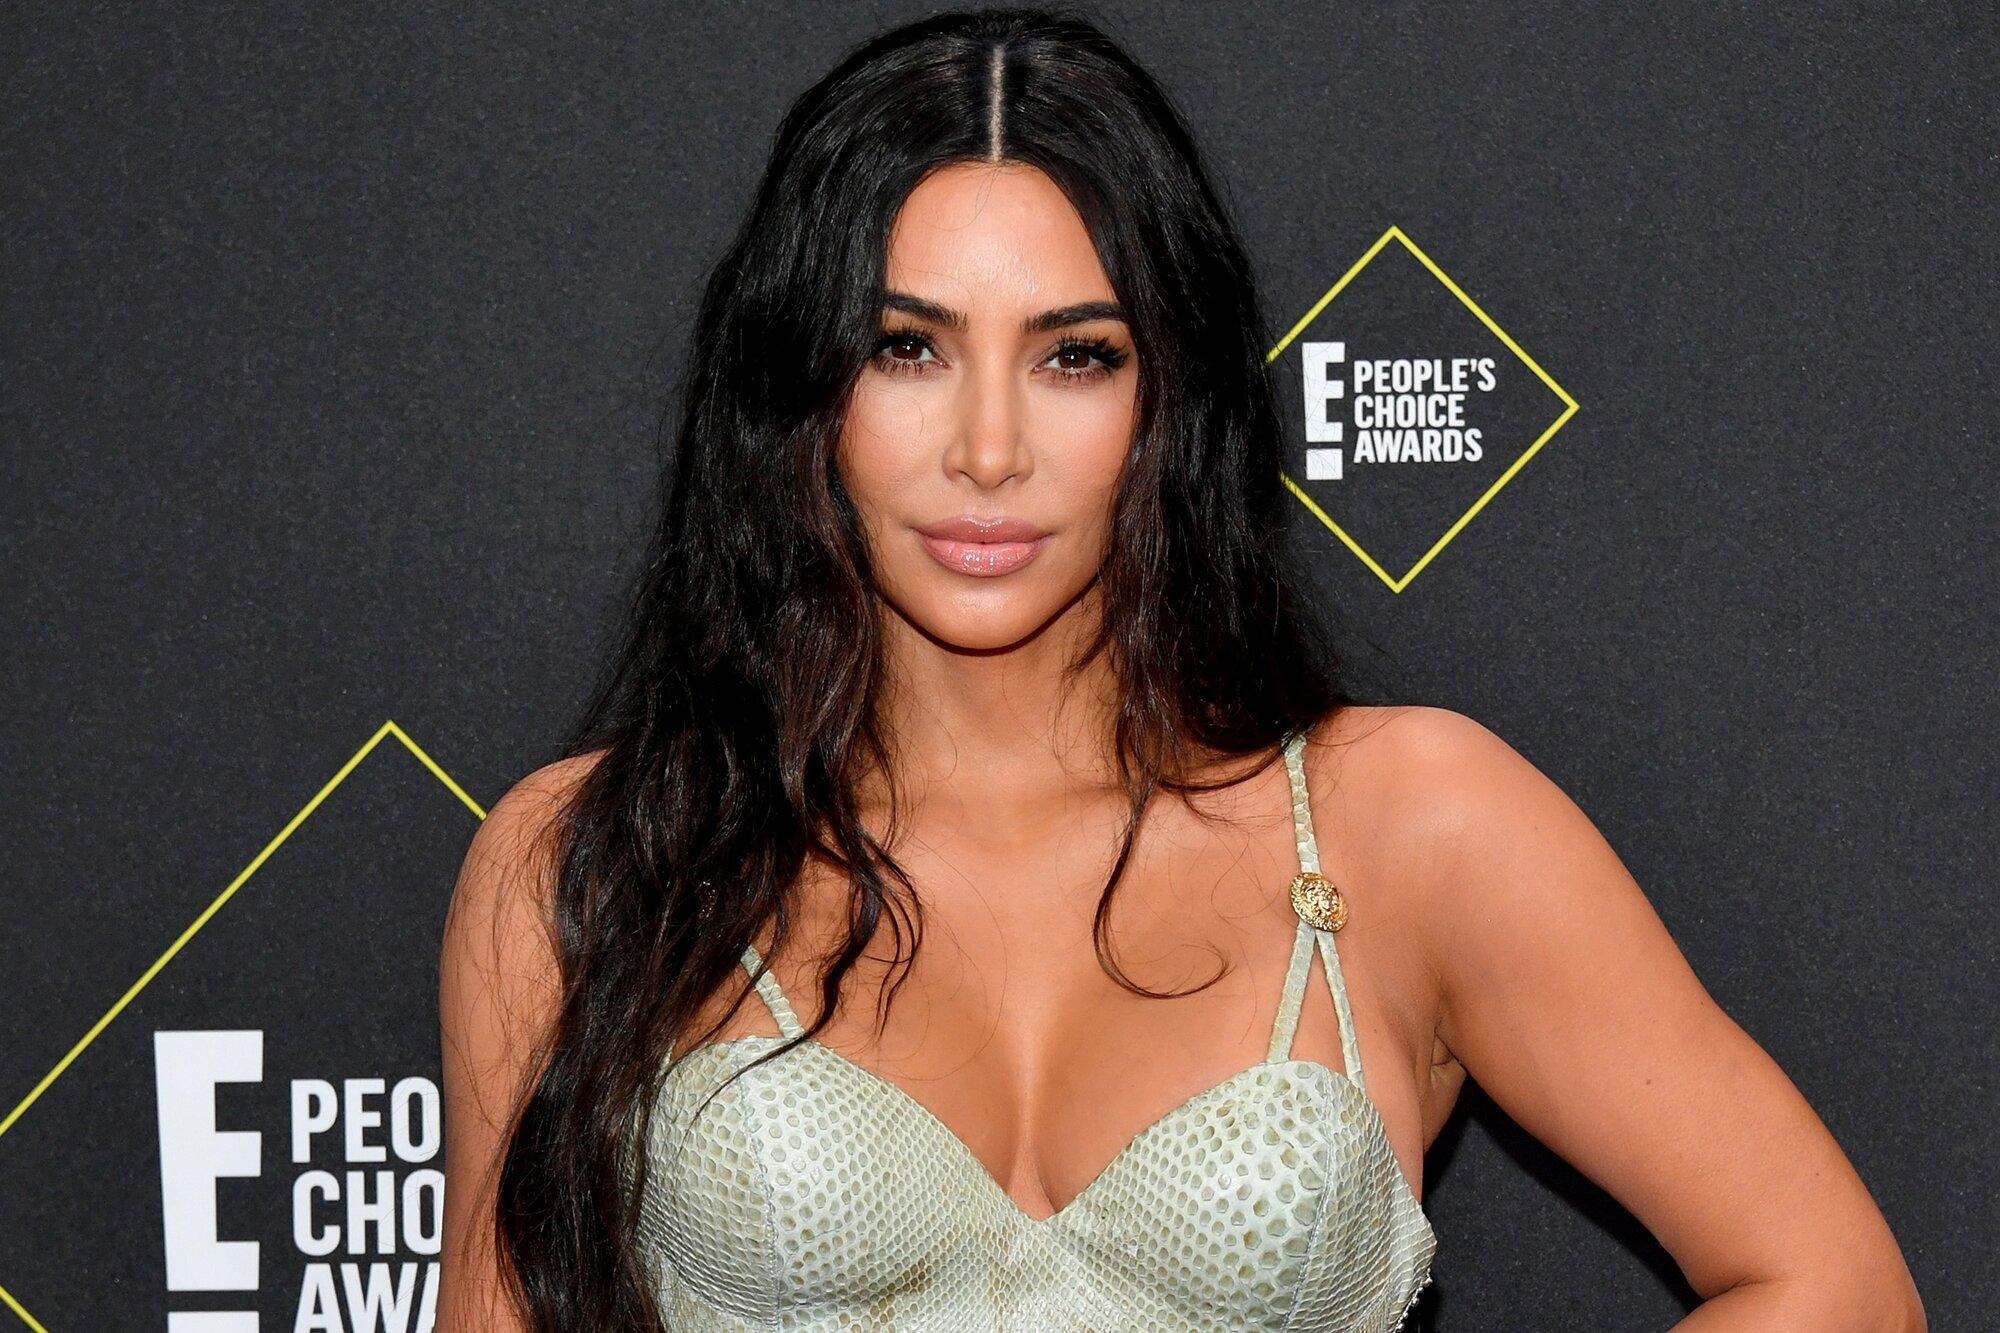 Kim Kardashian Teases Blonde Locks and Bleached Eyebrows Before Going 'Back to Dark'